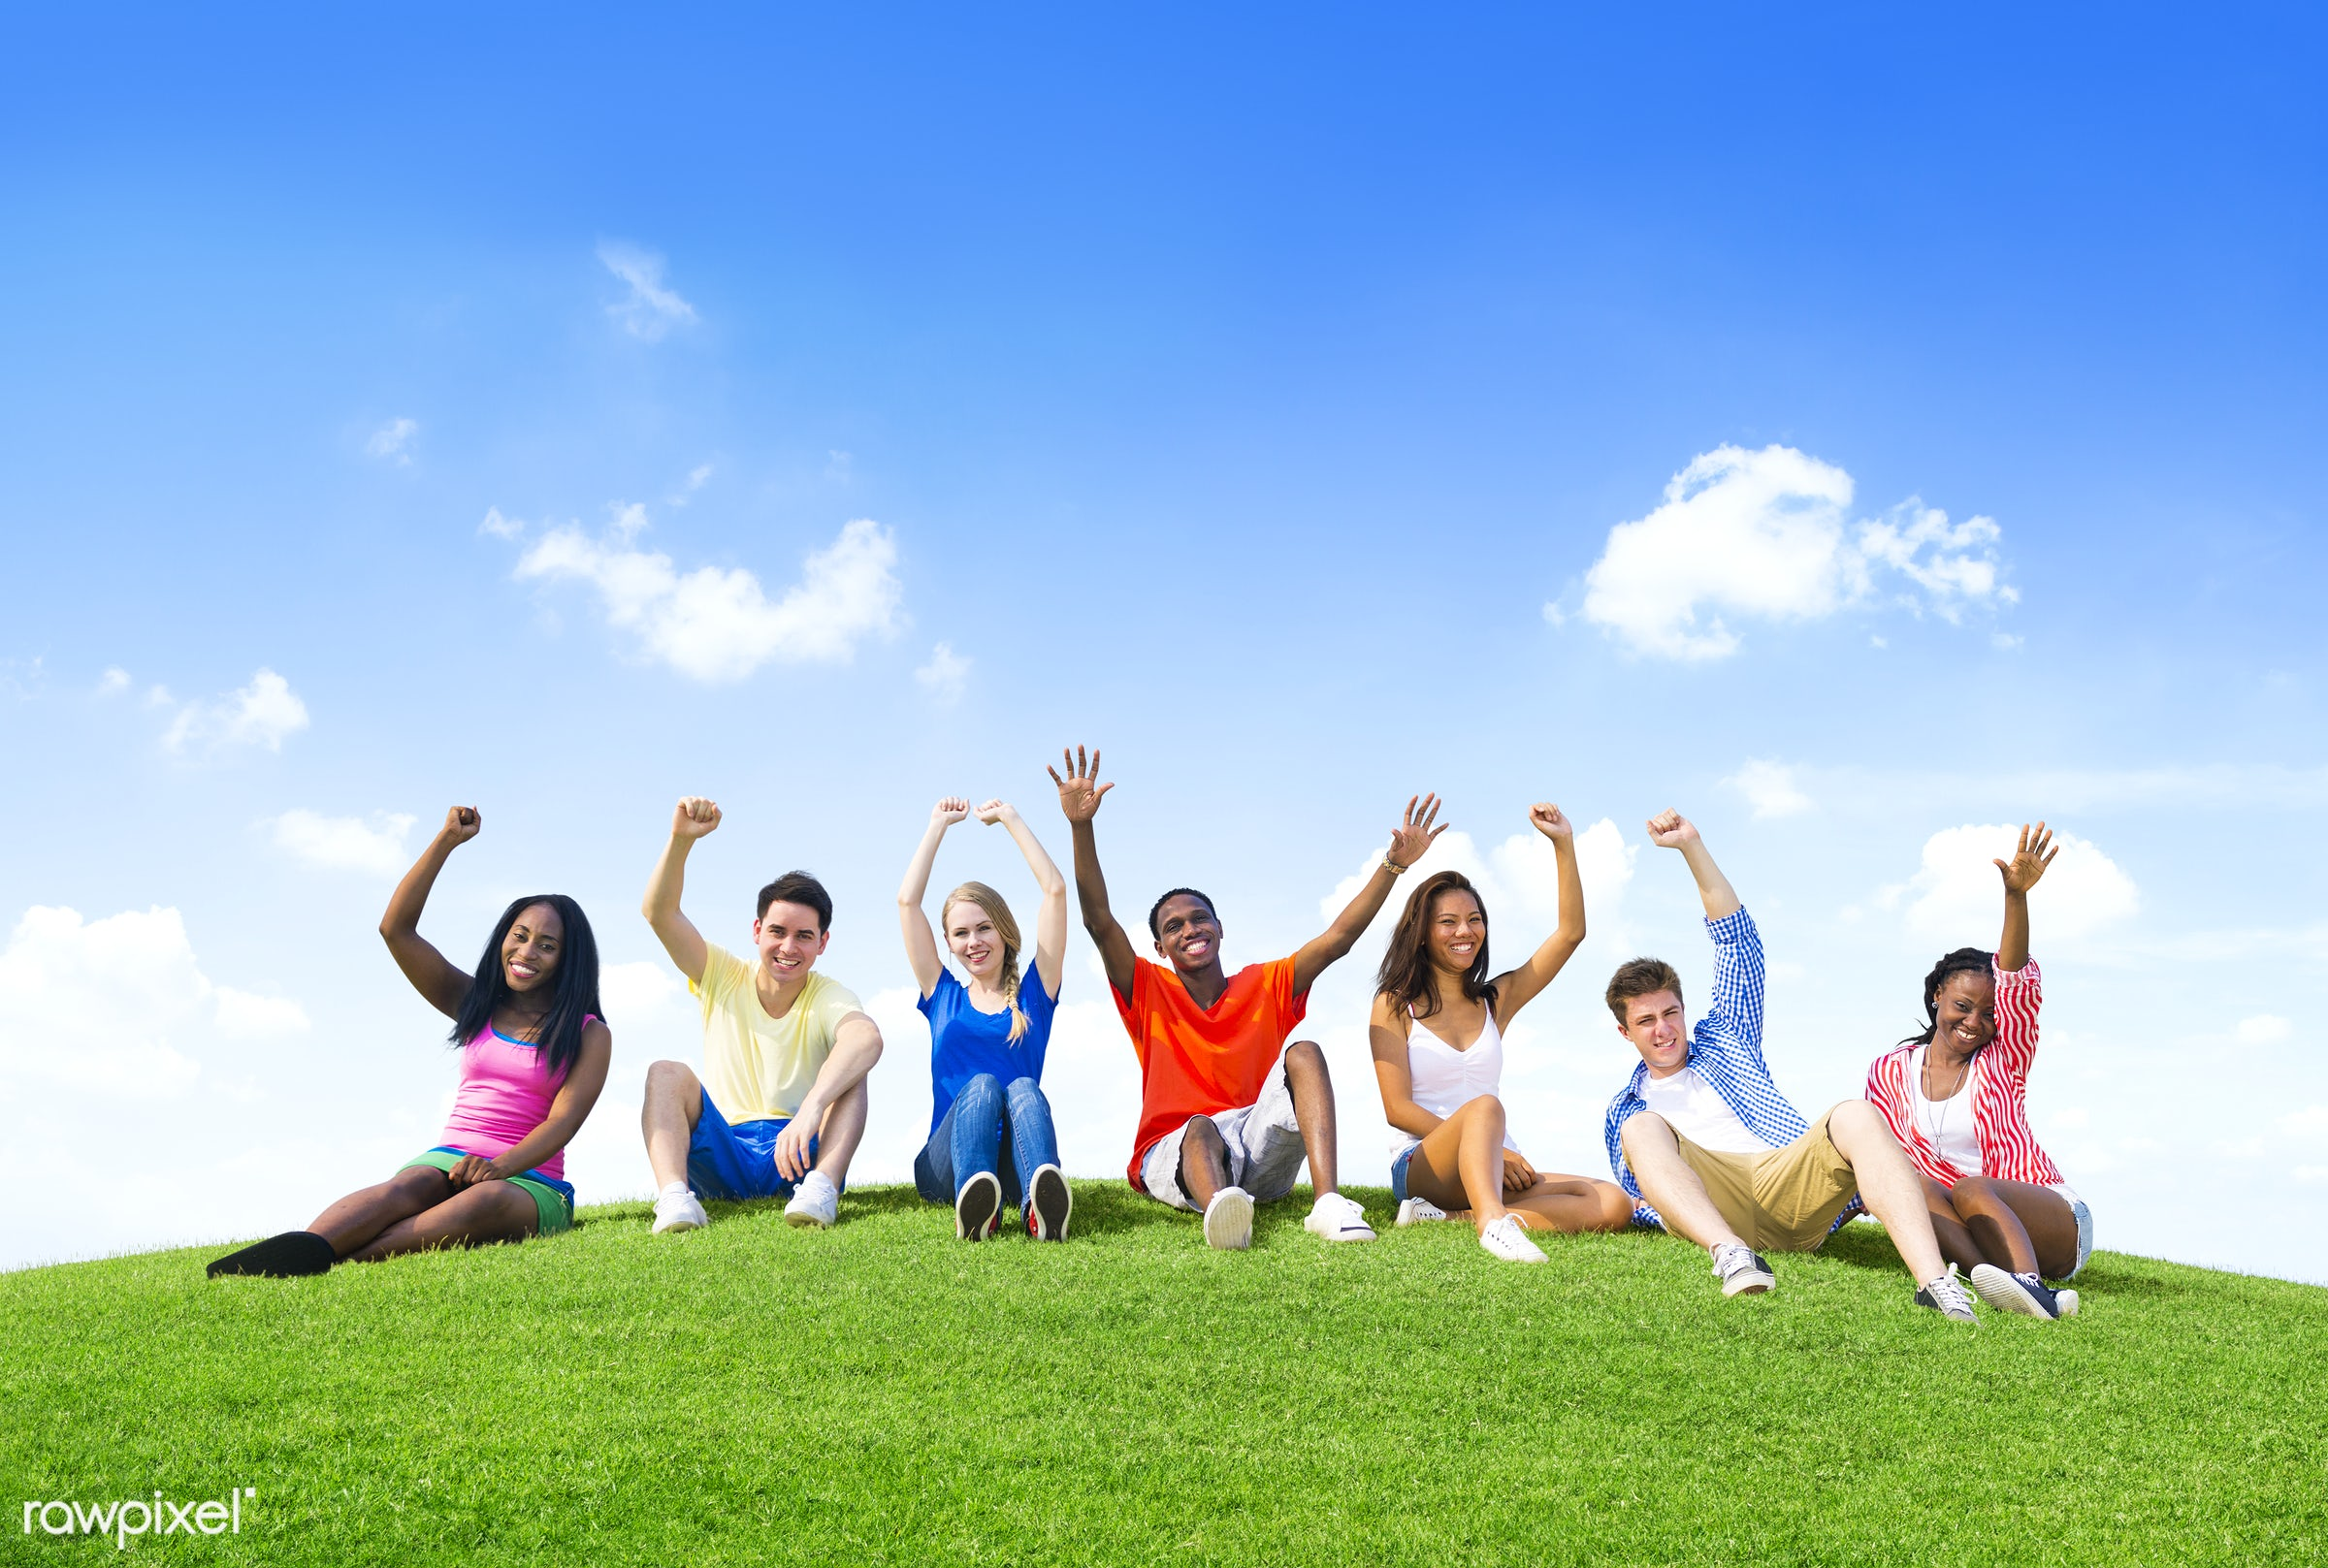 african, casual, celebration, cheerful, clouds, ethnic, excitement, freedom, freshness, friendship, fun, grass, green, group...